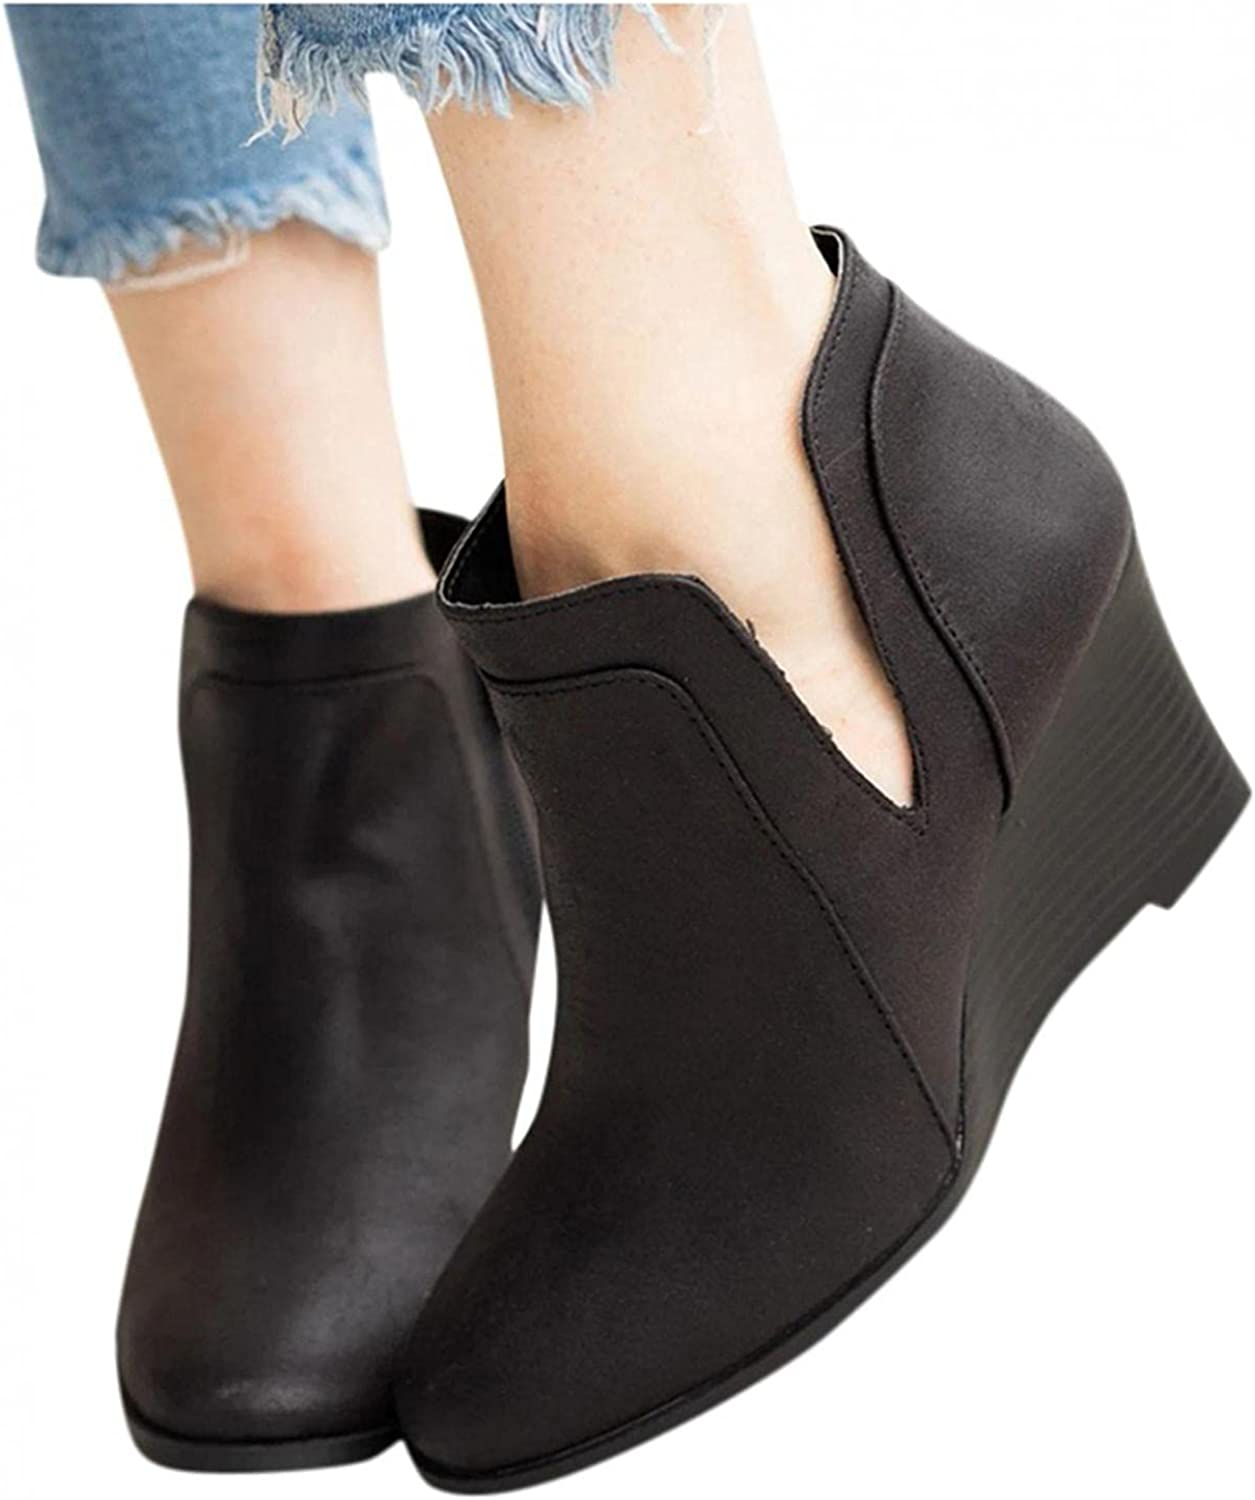 Gibobby Ankle Boots for Women SEAL limited product Low Fashion Ho Dressy Heel Women's free